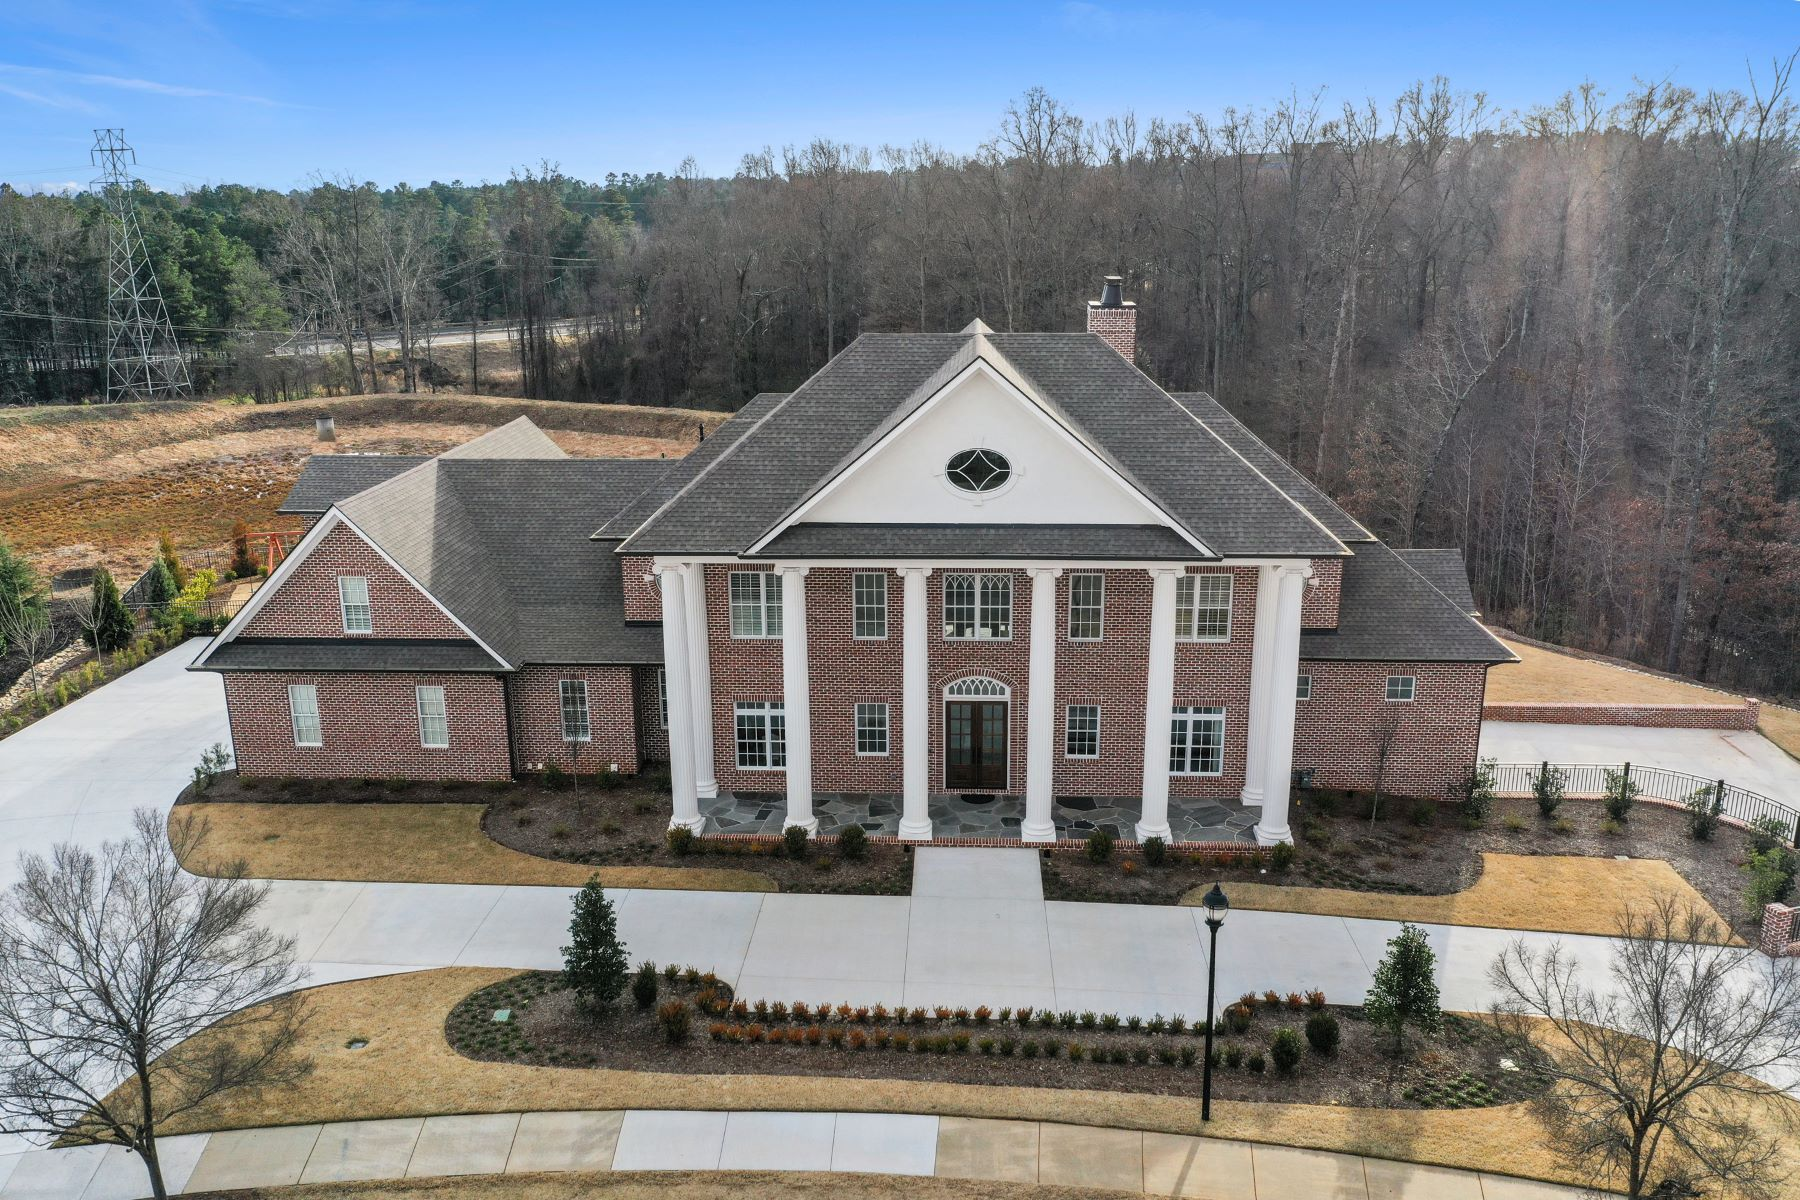 Single Family Homes for Active at Stunning, brand new custom build by J. Francis Builders! 112 Welling Circle Greenville, South Carolina 29607 United States